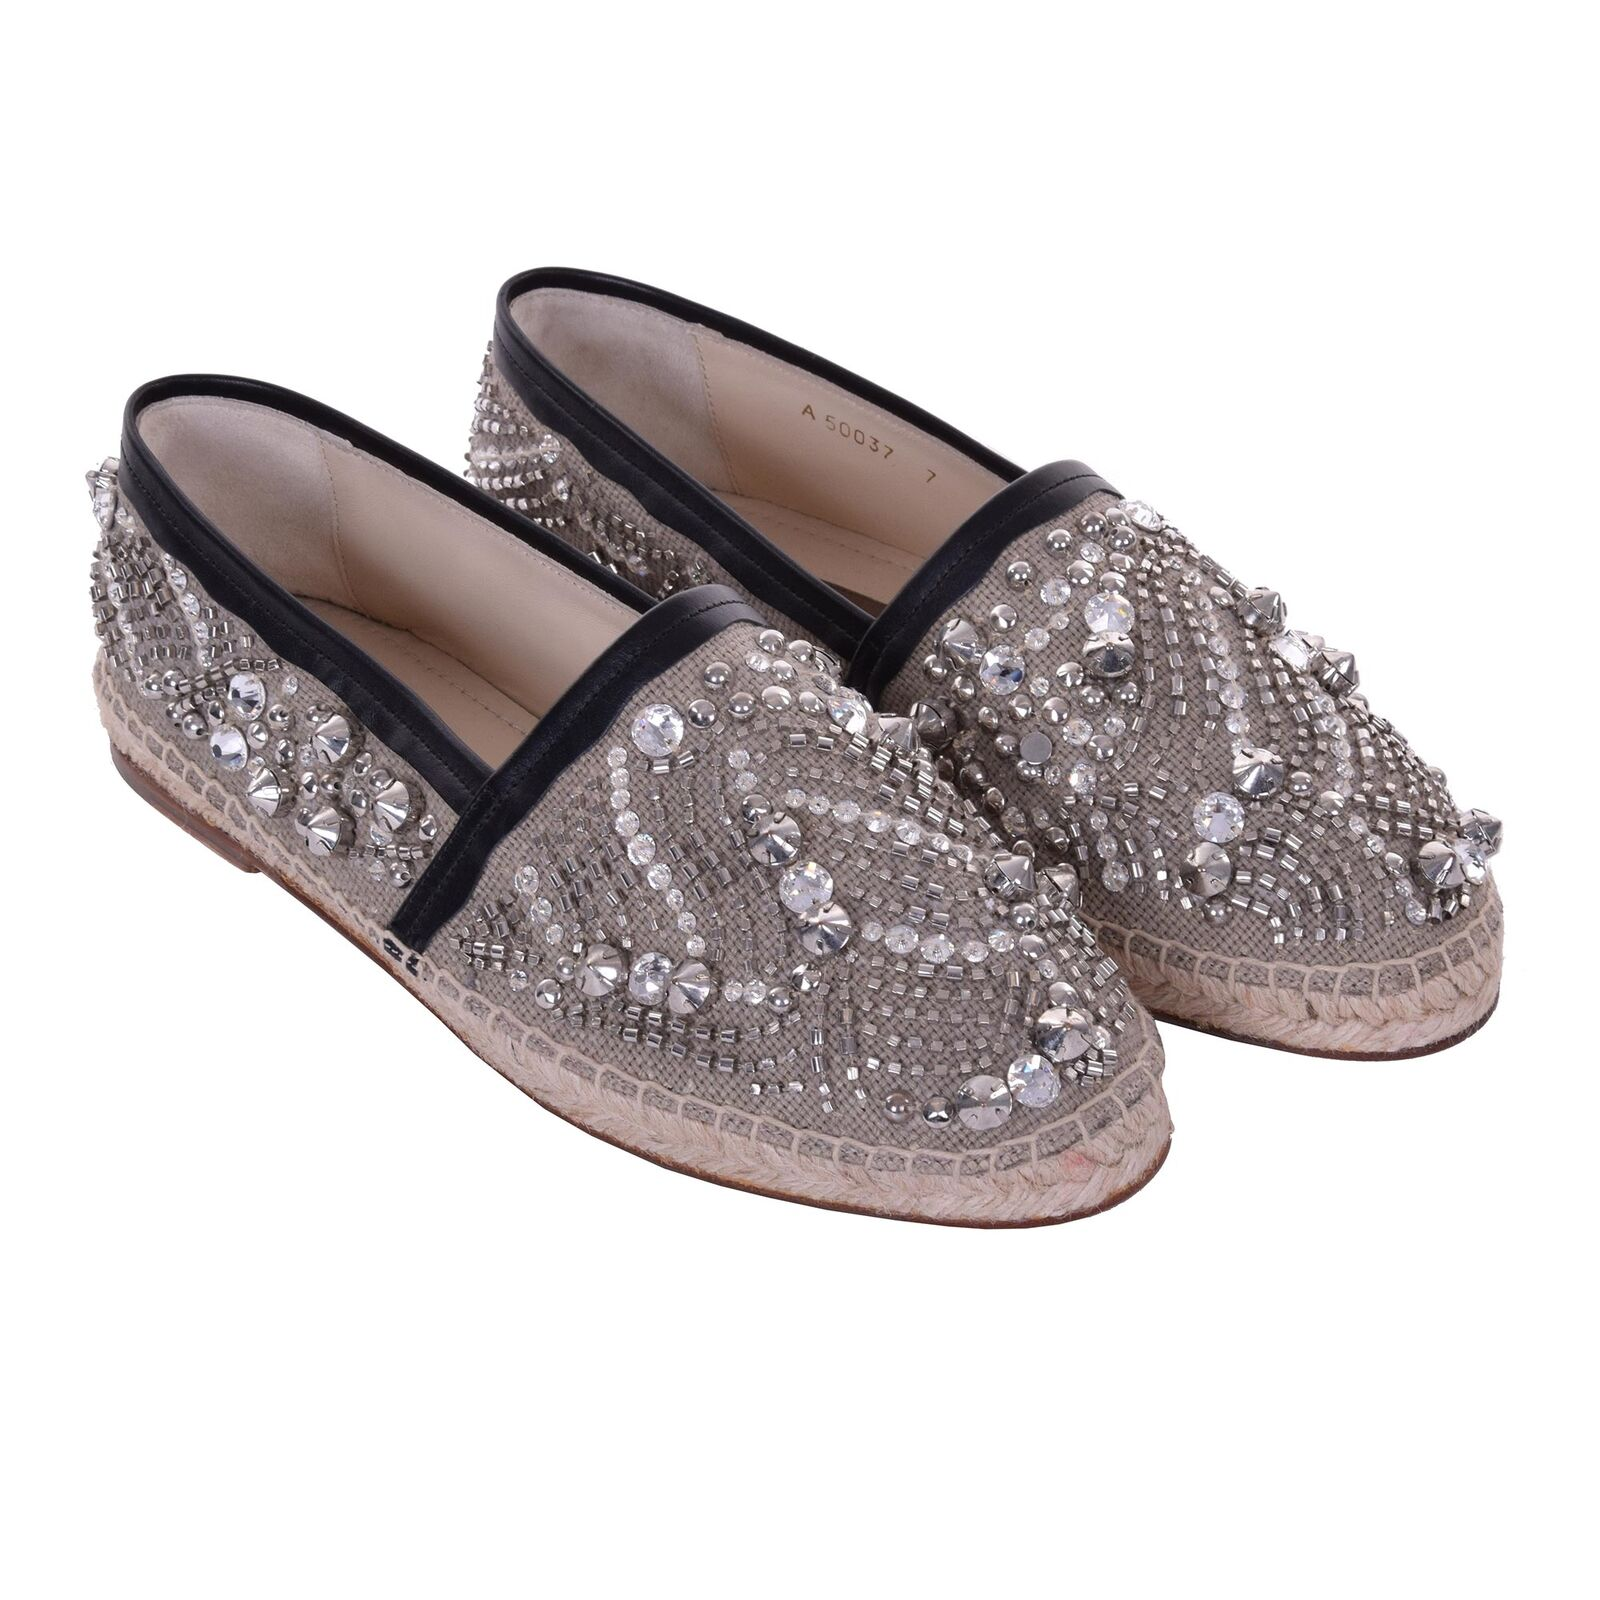 DOLCE /& GABBANA Sequins Canvas Espadrilles Shoes TREMITI Silver Beige 06224